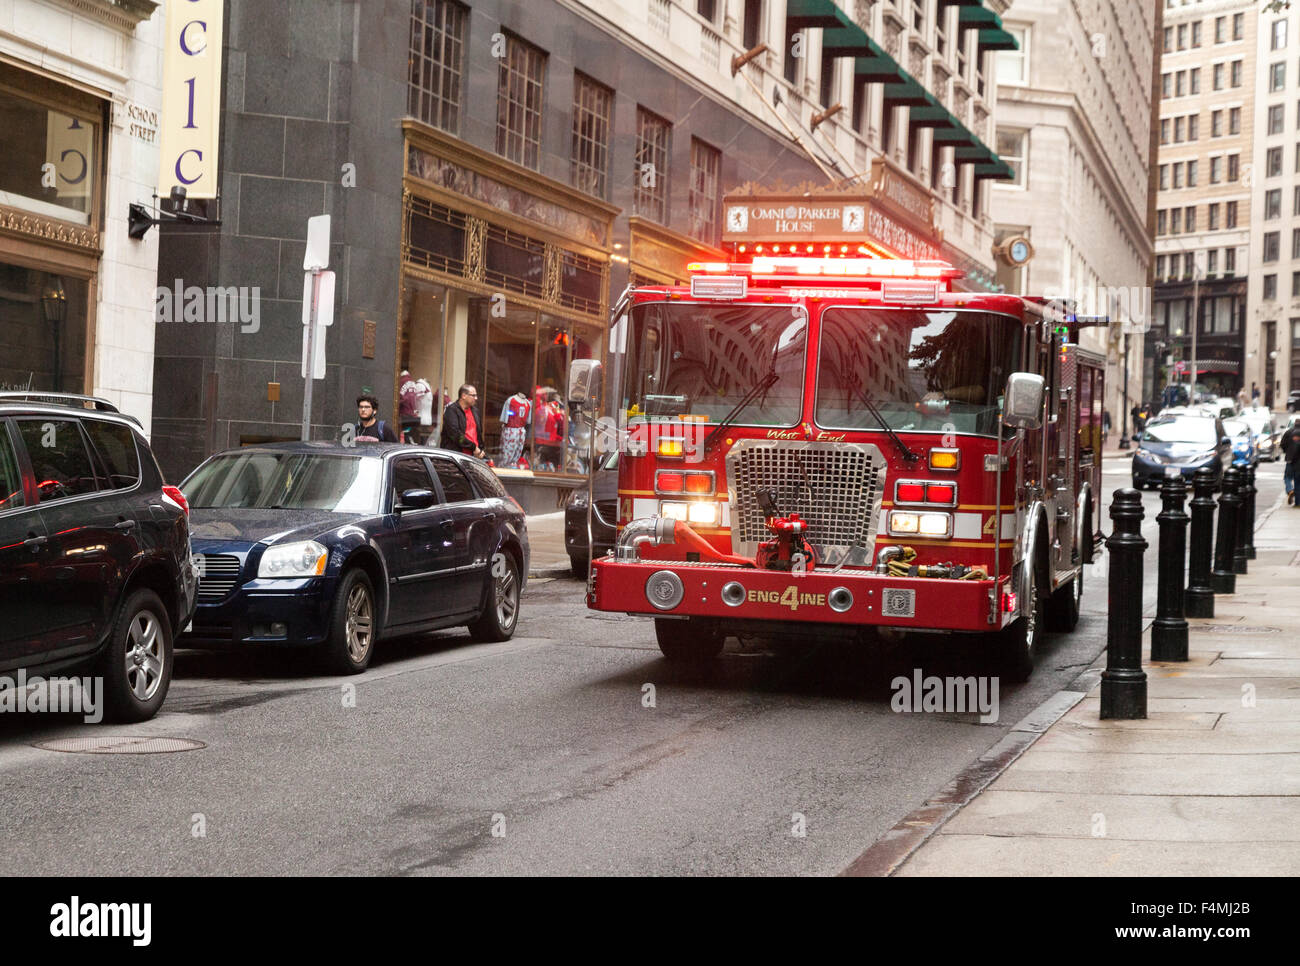 A Fire Truck From The Boston Fire Department With Lights On Going To A 911  Emergency